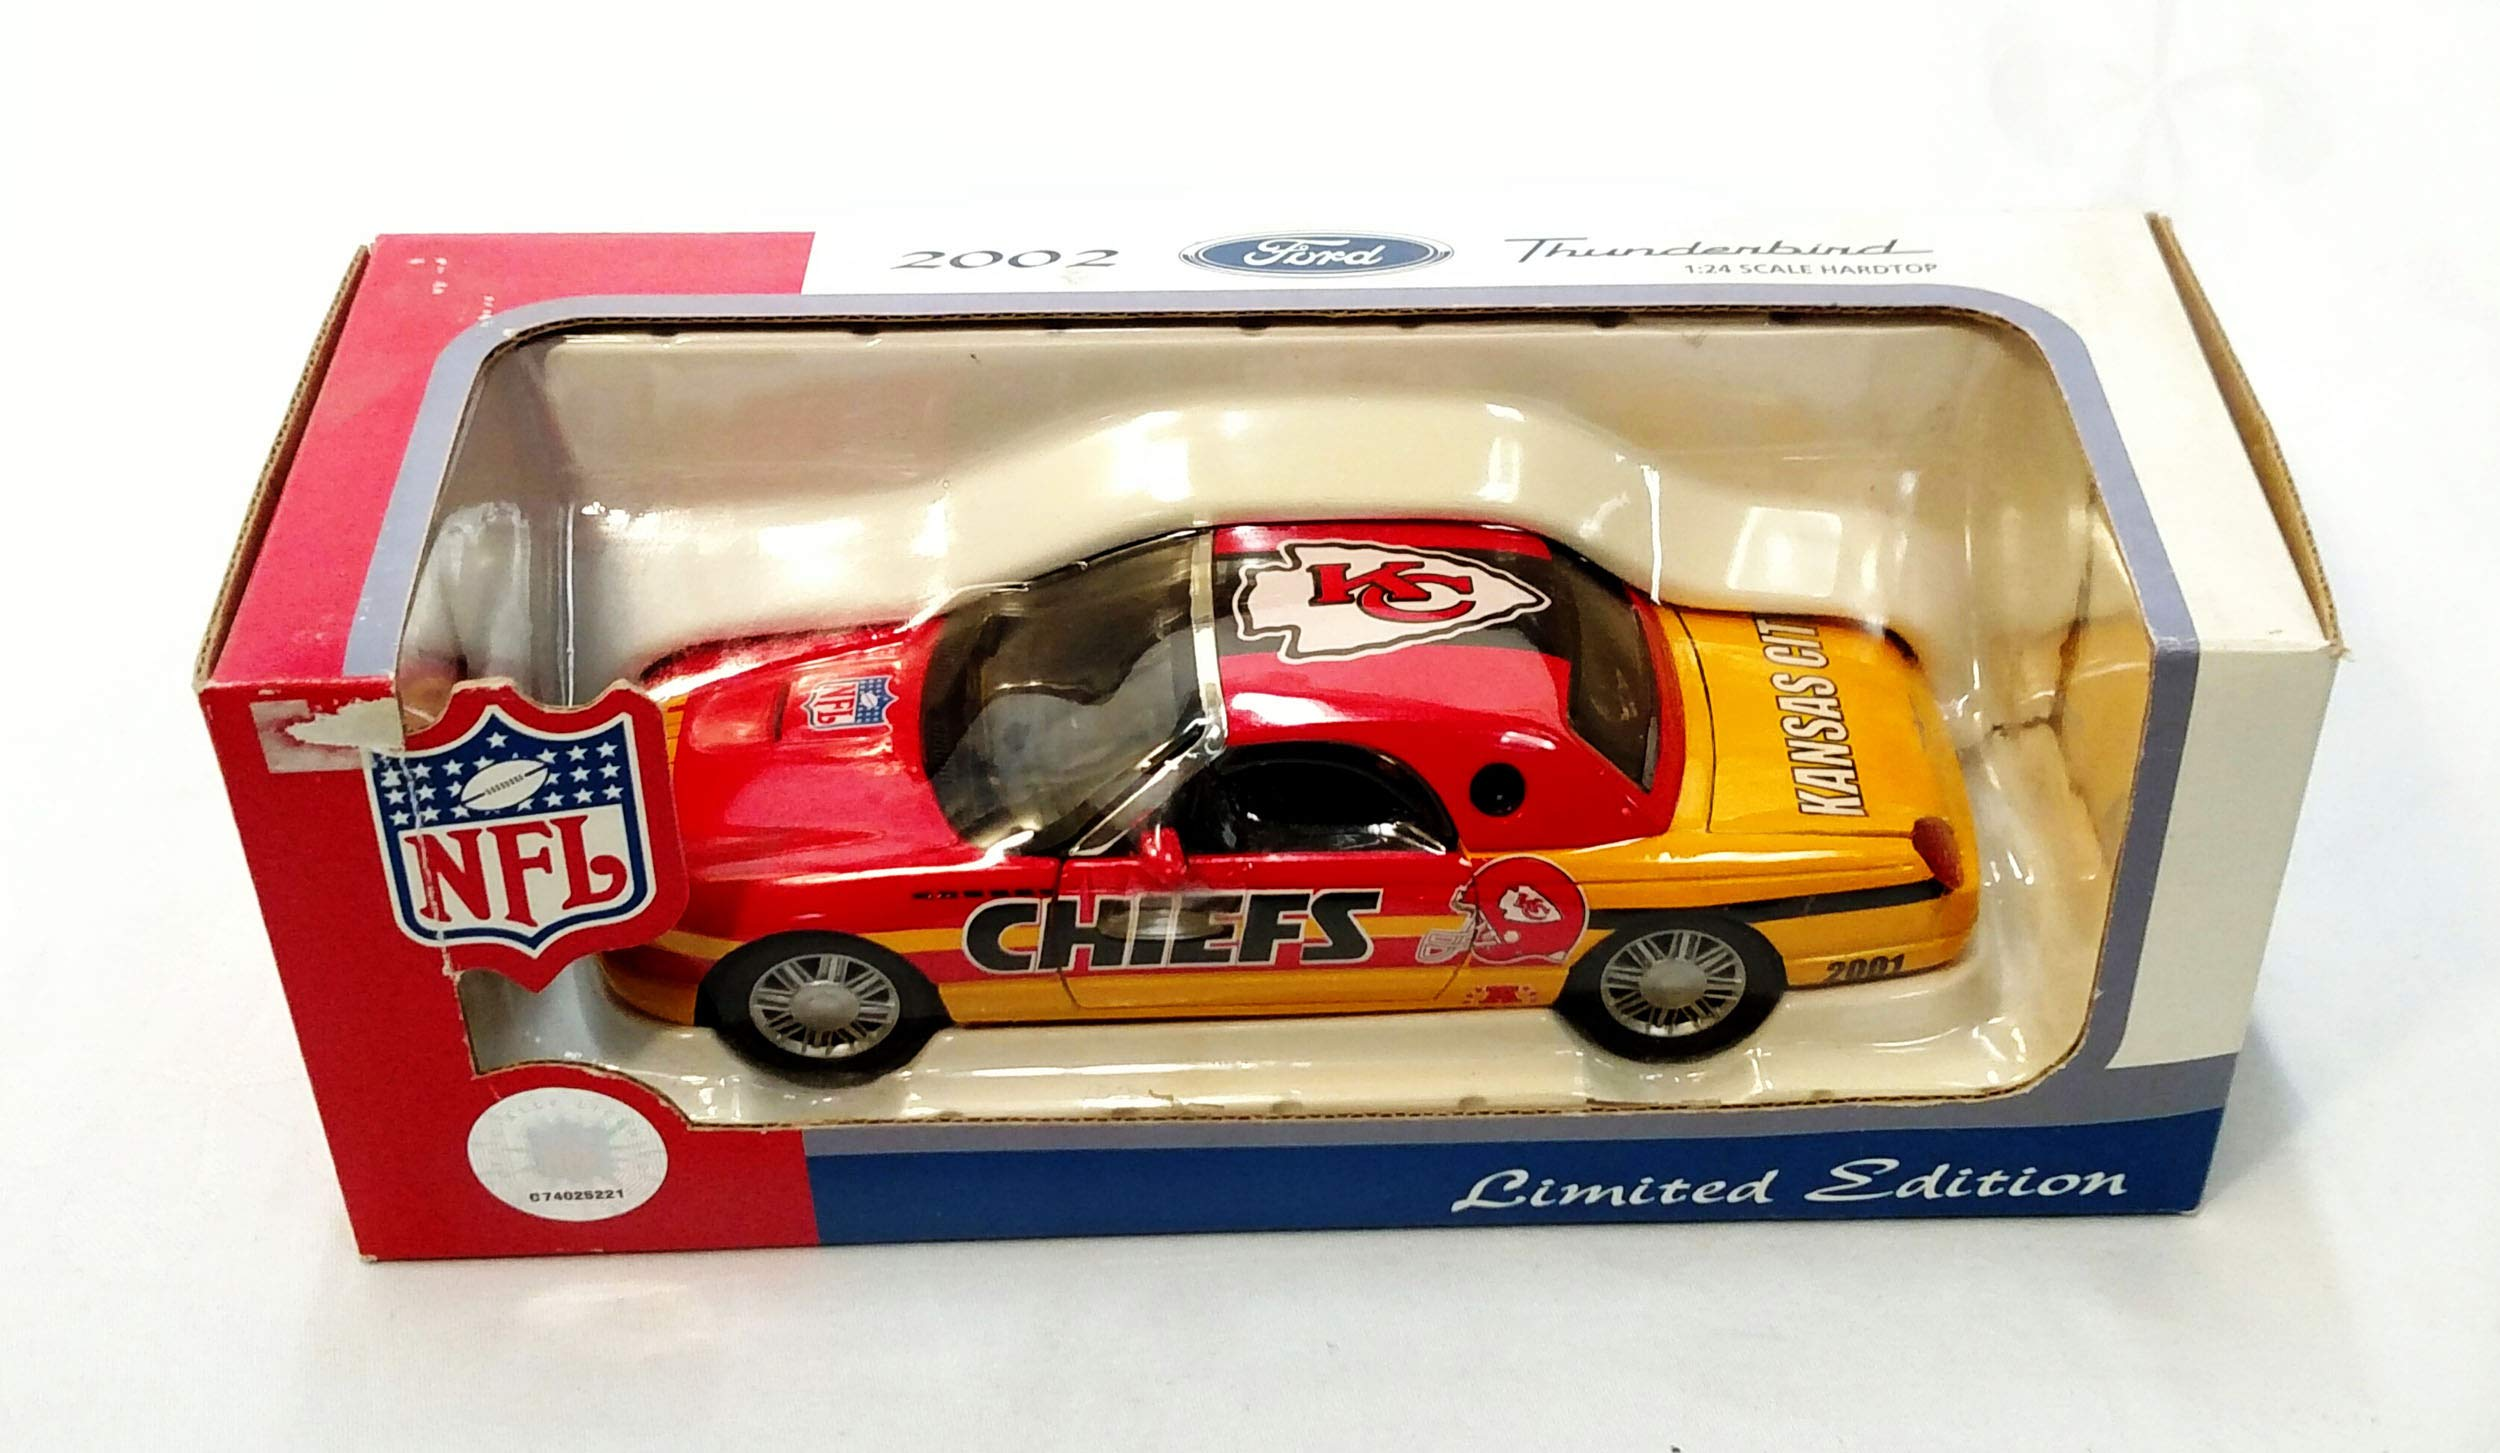 Kansas City Chiefs 2002 Ford Thunderbird Limited Edition Die Cast Collectible